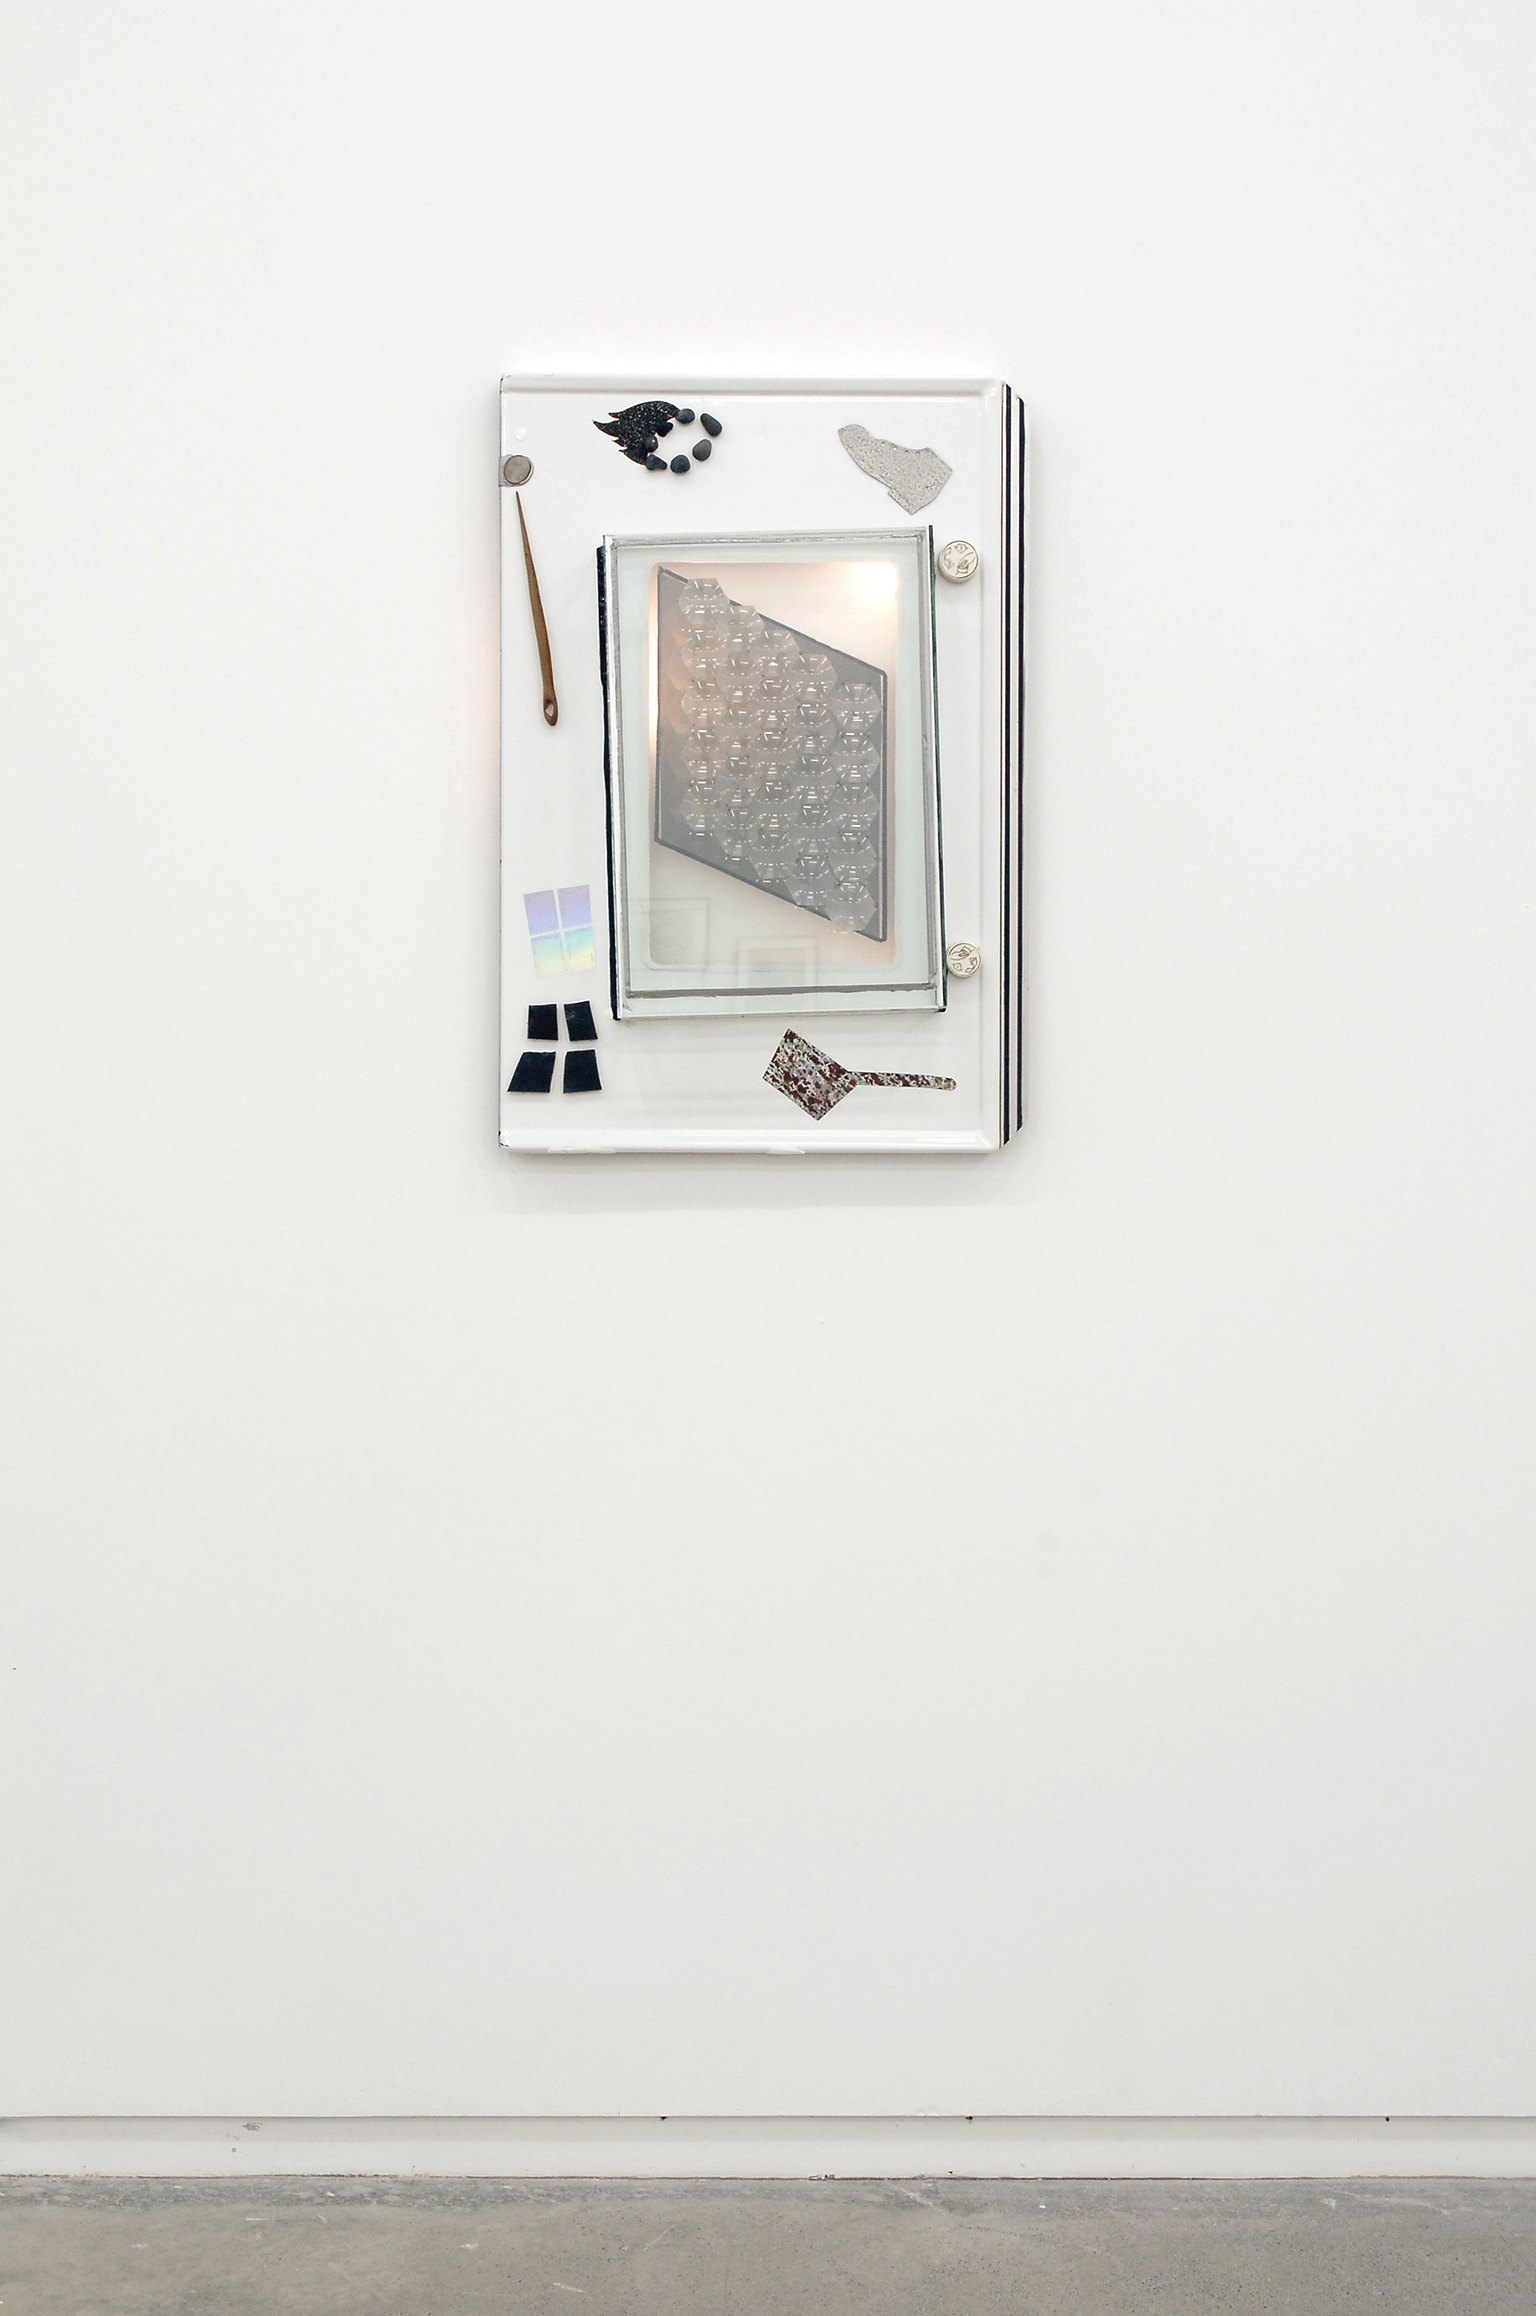 Jerry Pethick, Margaret Yana and The Century Plant, 1970–1988, enamel steel, silicon, spectrfoil, wood, stone, aluminum, plastic, fresnel lens, black and white photography, glass, acrylic paint skin, 30 x 20 x 4 in. (76 x 51 x 11 cm) by